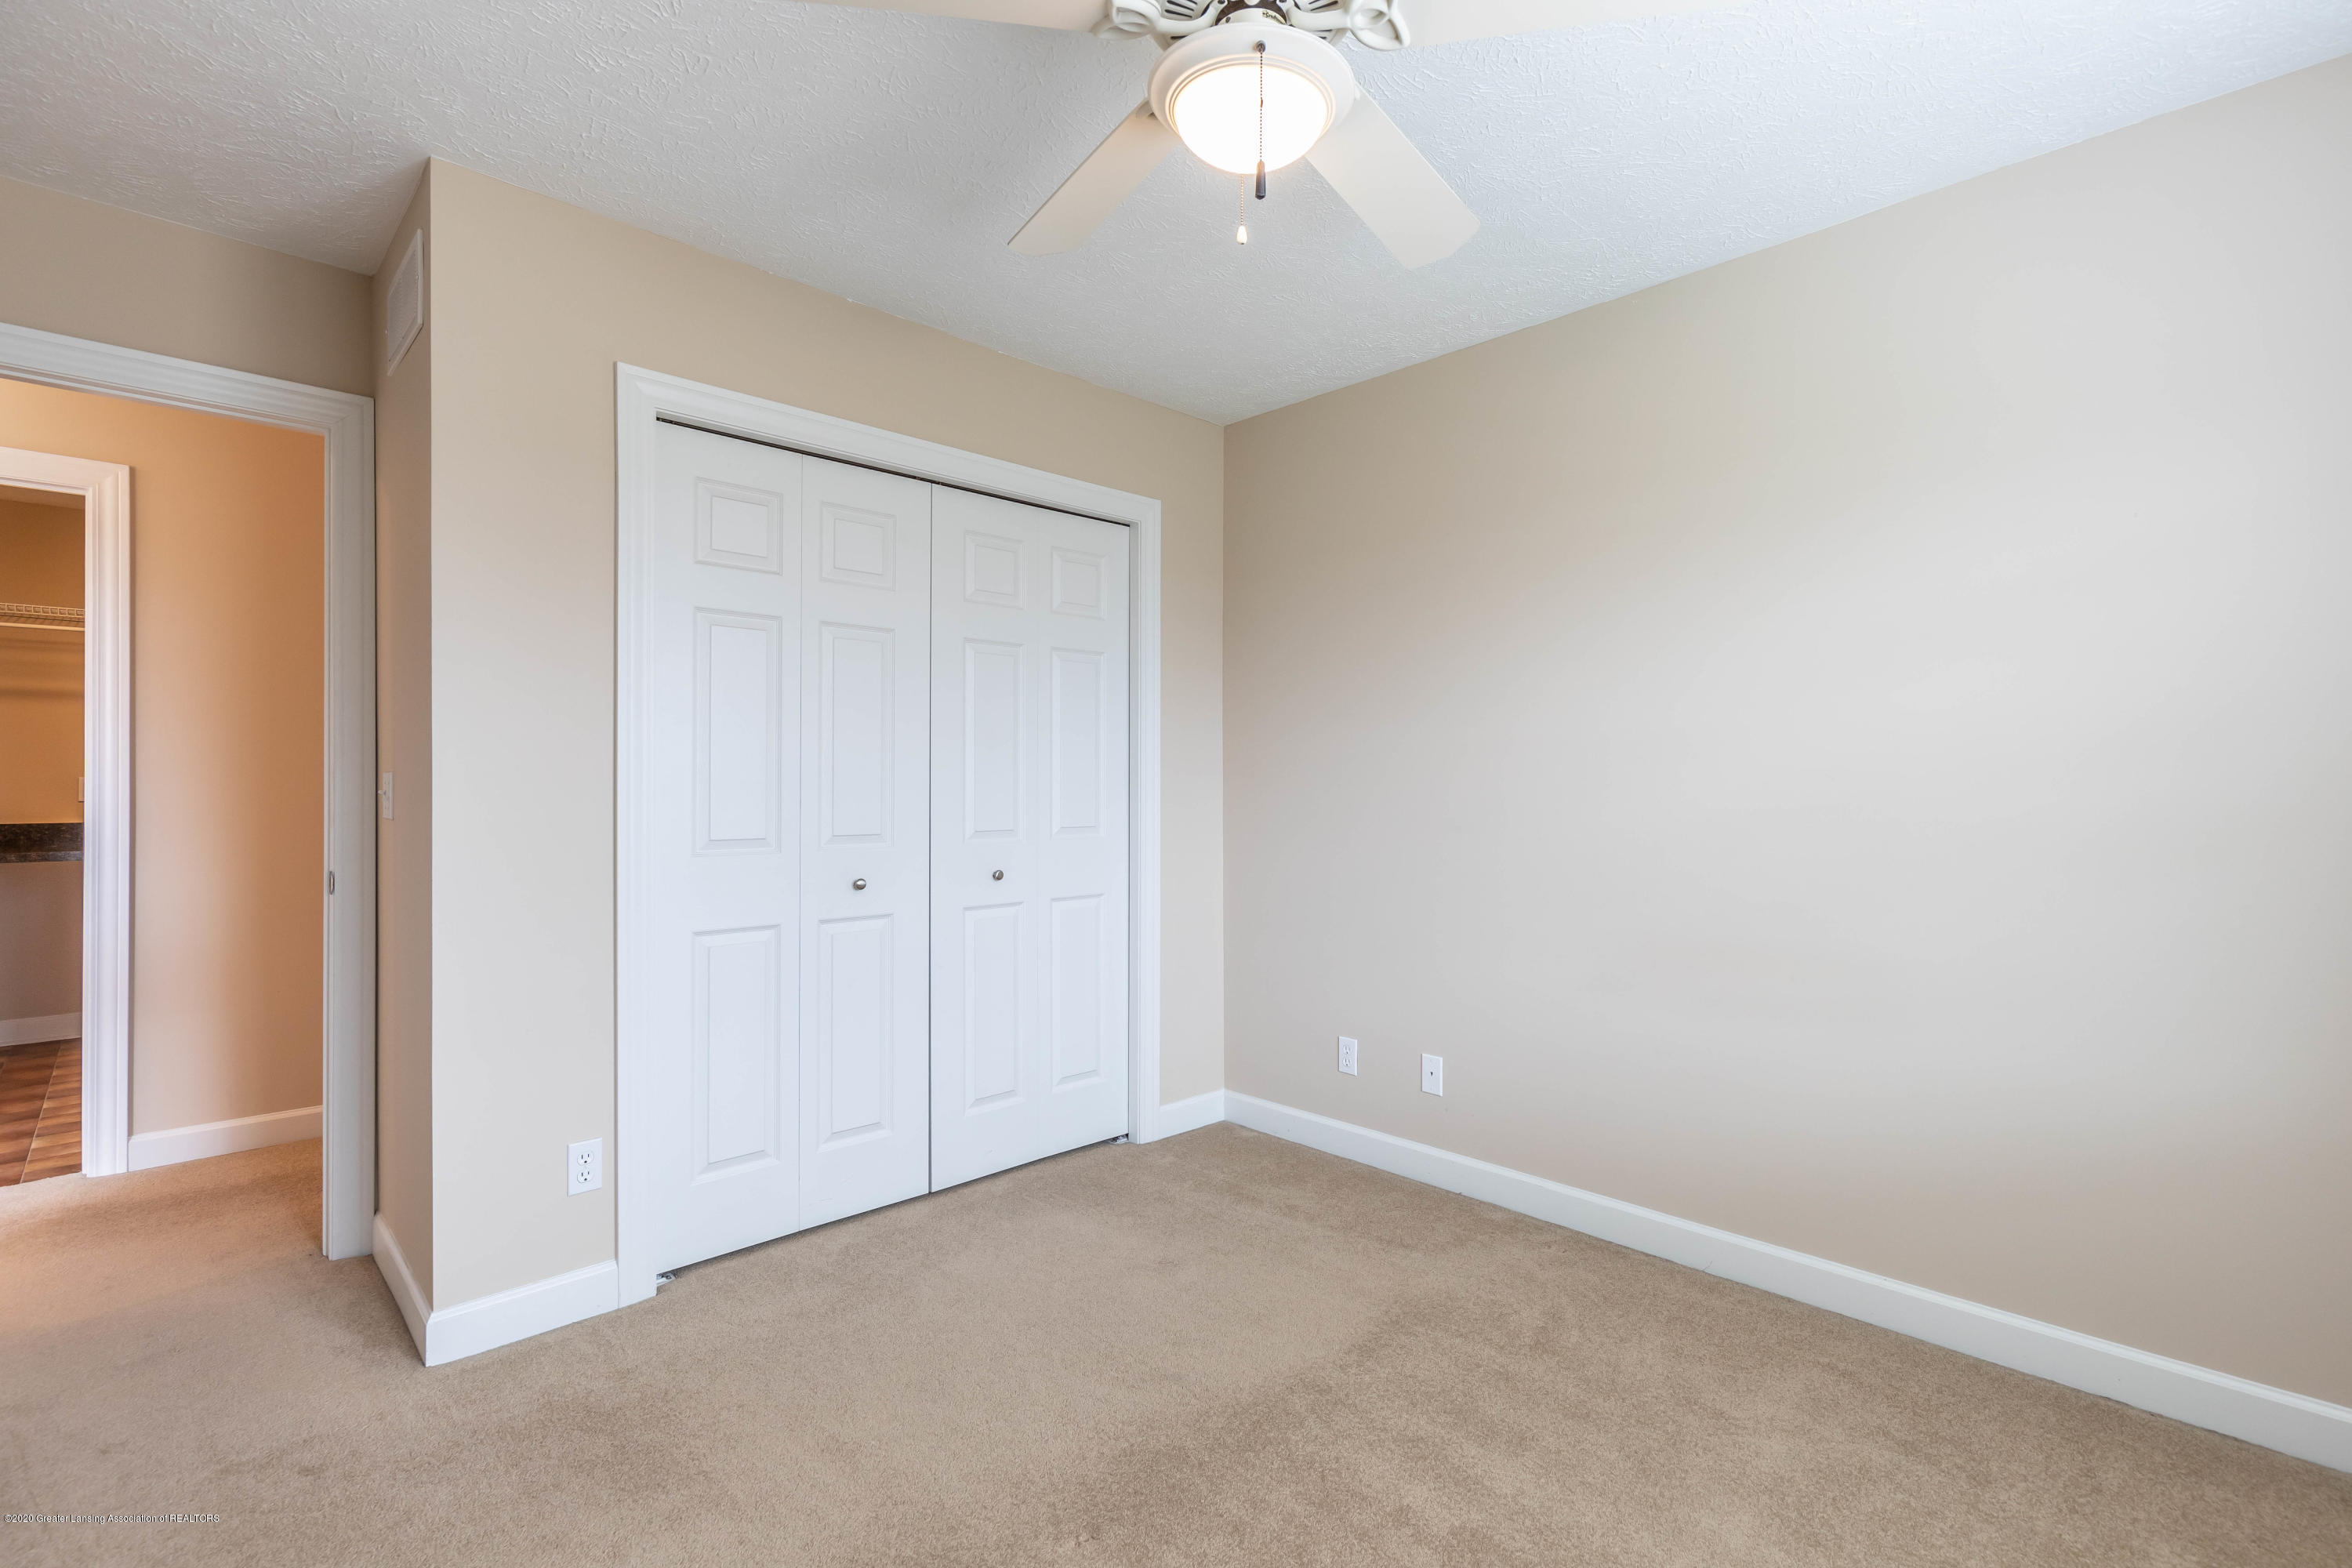 12810 Chartreuse Dr - chartreusebed31 (1 of 1) - 29